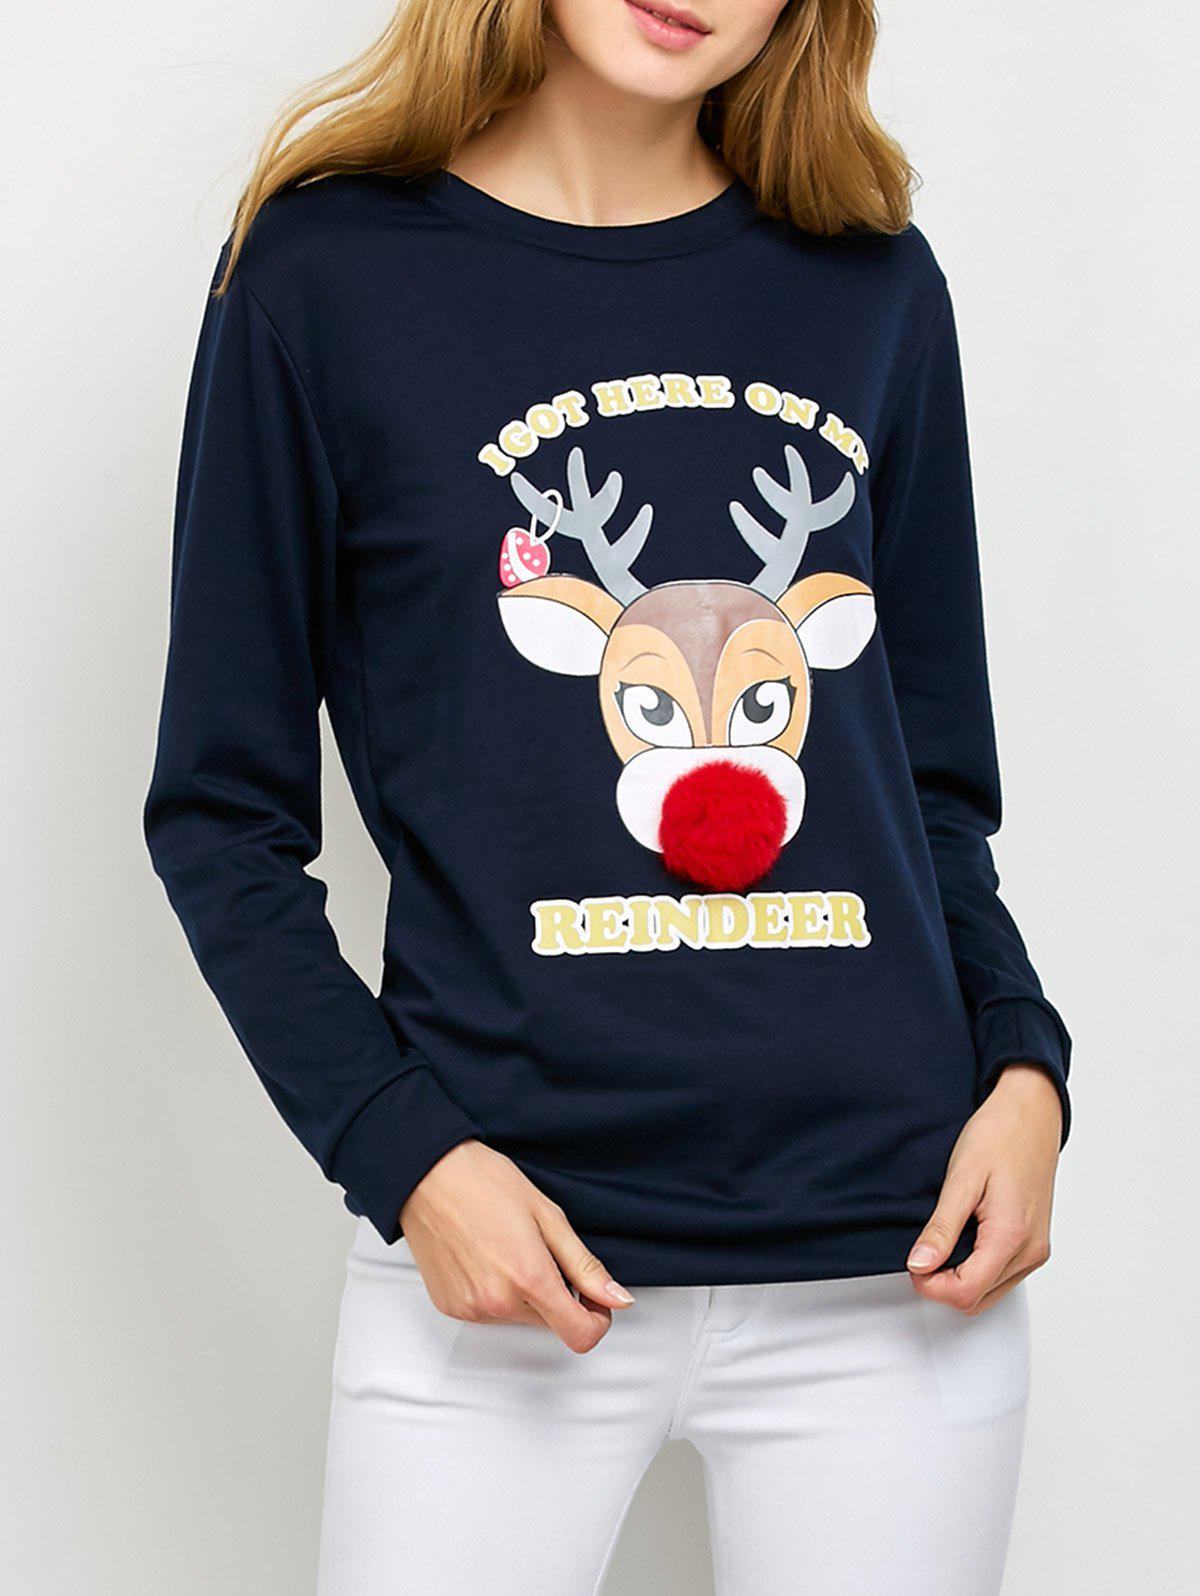 Pom Ball Christmas Reindeer Drop Shoulder SweatshirtWOMEN<br><br>Size: S; Color: PURPLISH BLUE; Material: Cotton Blend,Polyester; Shirt Length: Regular; Sleeve Length: Full; Style: Fashion; Pattern Style: Animal; Season: Fall,Spring,Winter; Weight: 0.470kg; Package Contents: 1 x Sweatshirt;